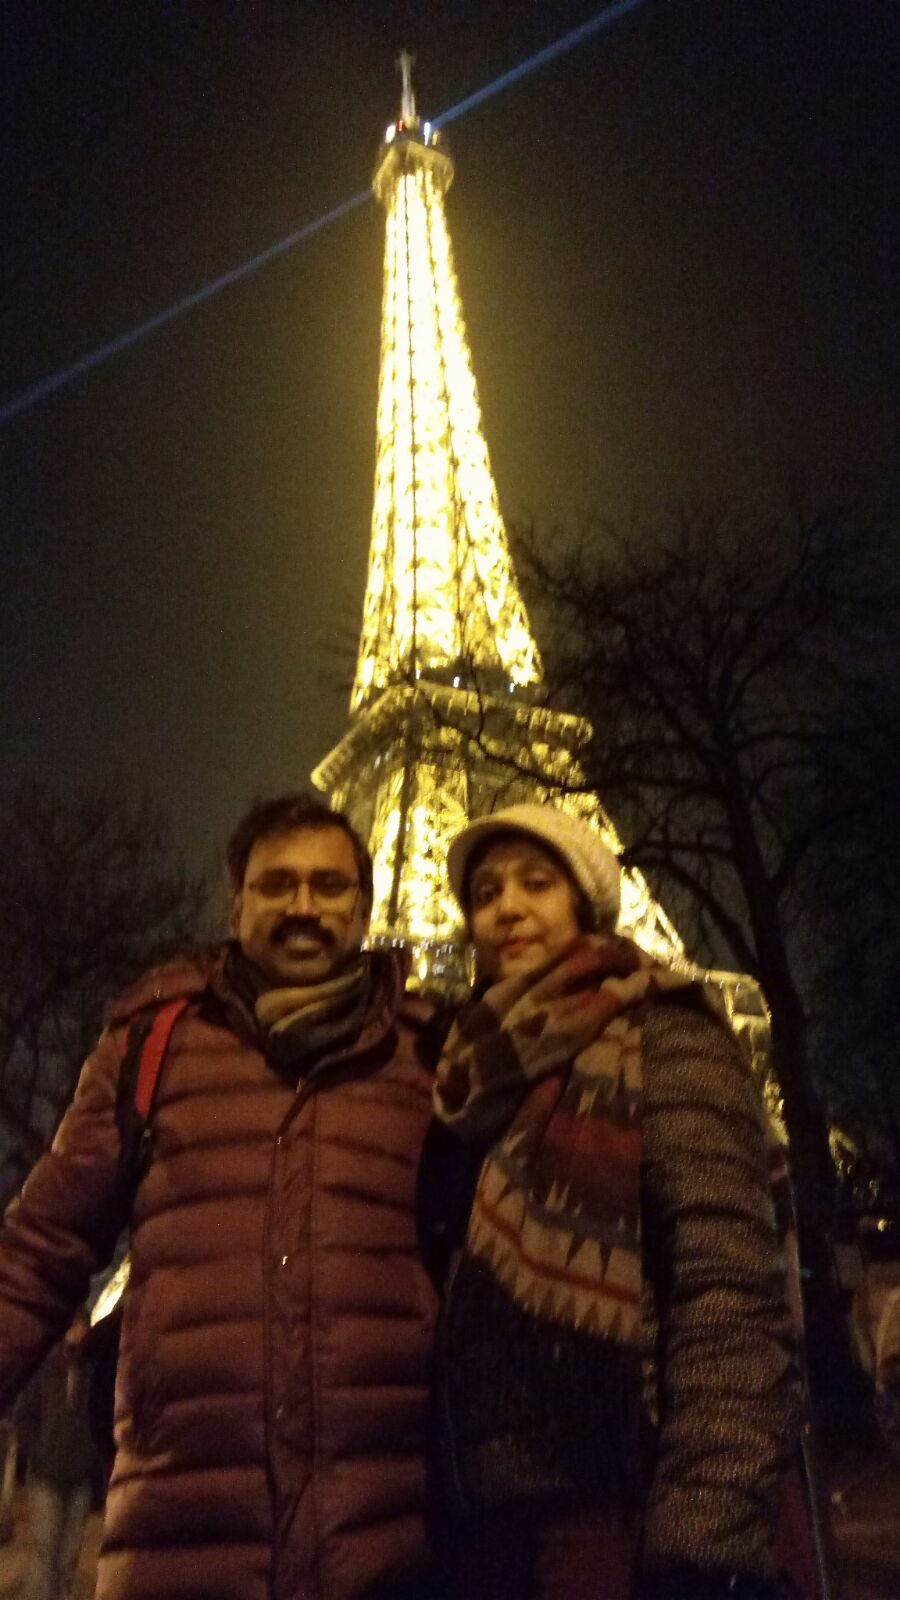 Me with my love @ Paris